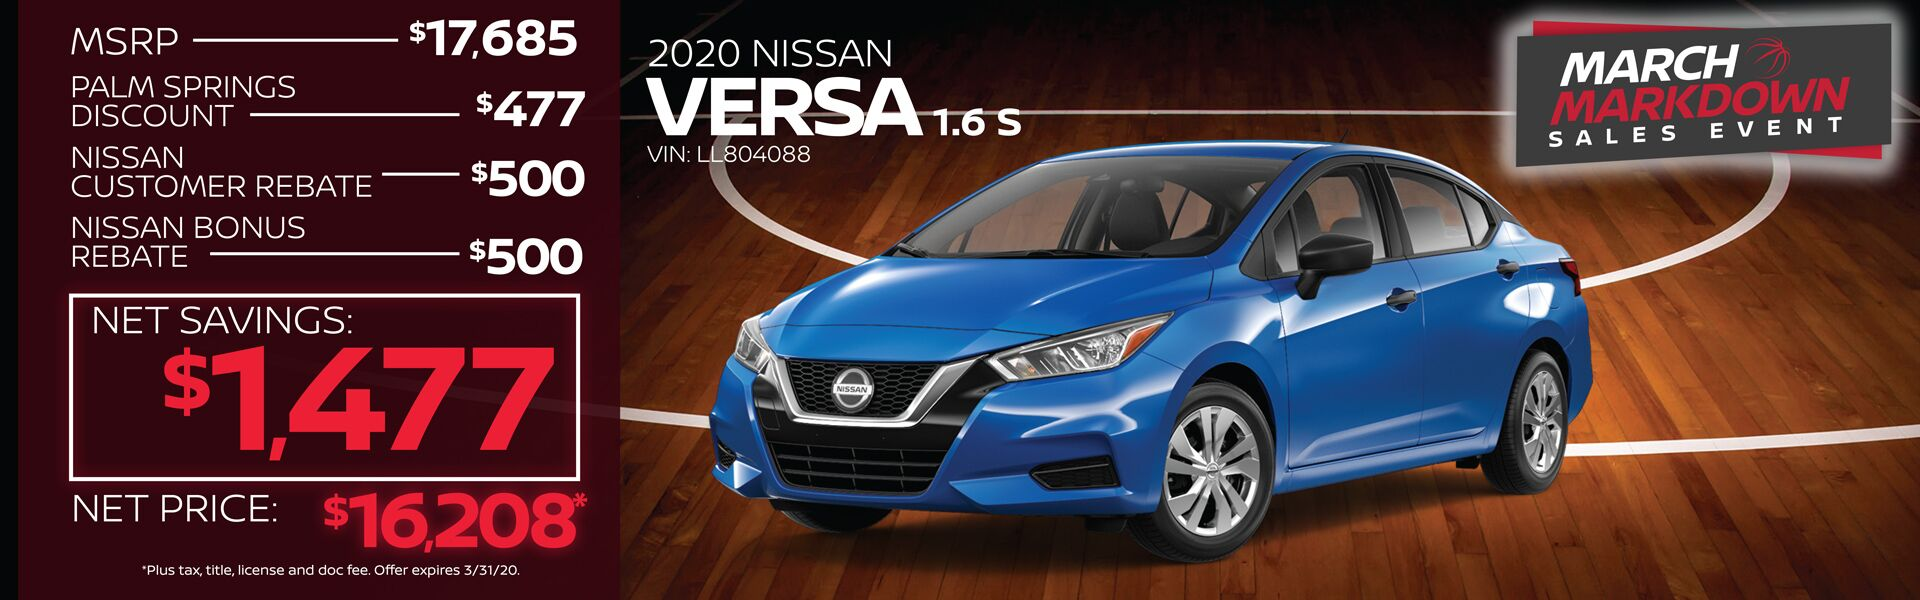 2020 Nissan Versa $1,477 Net Savings